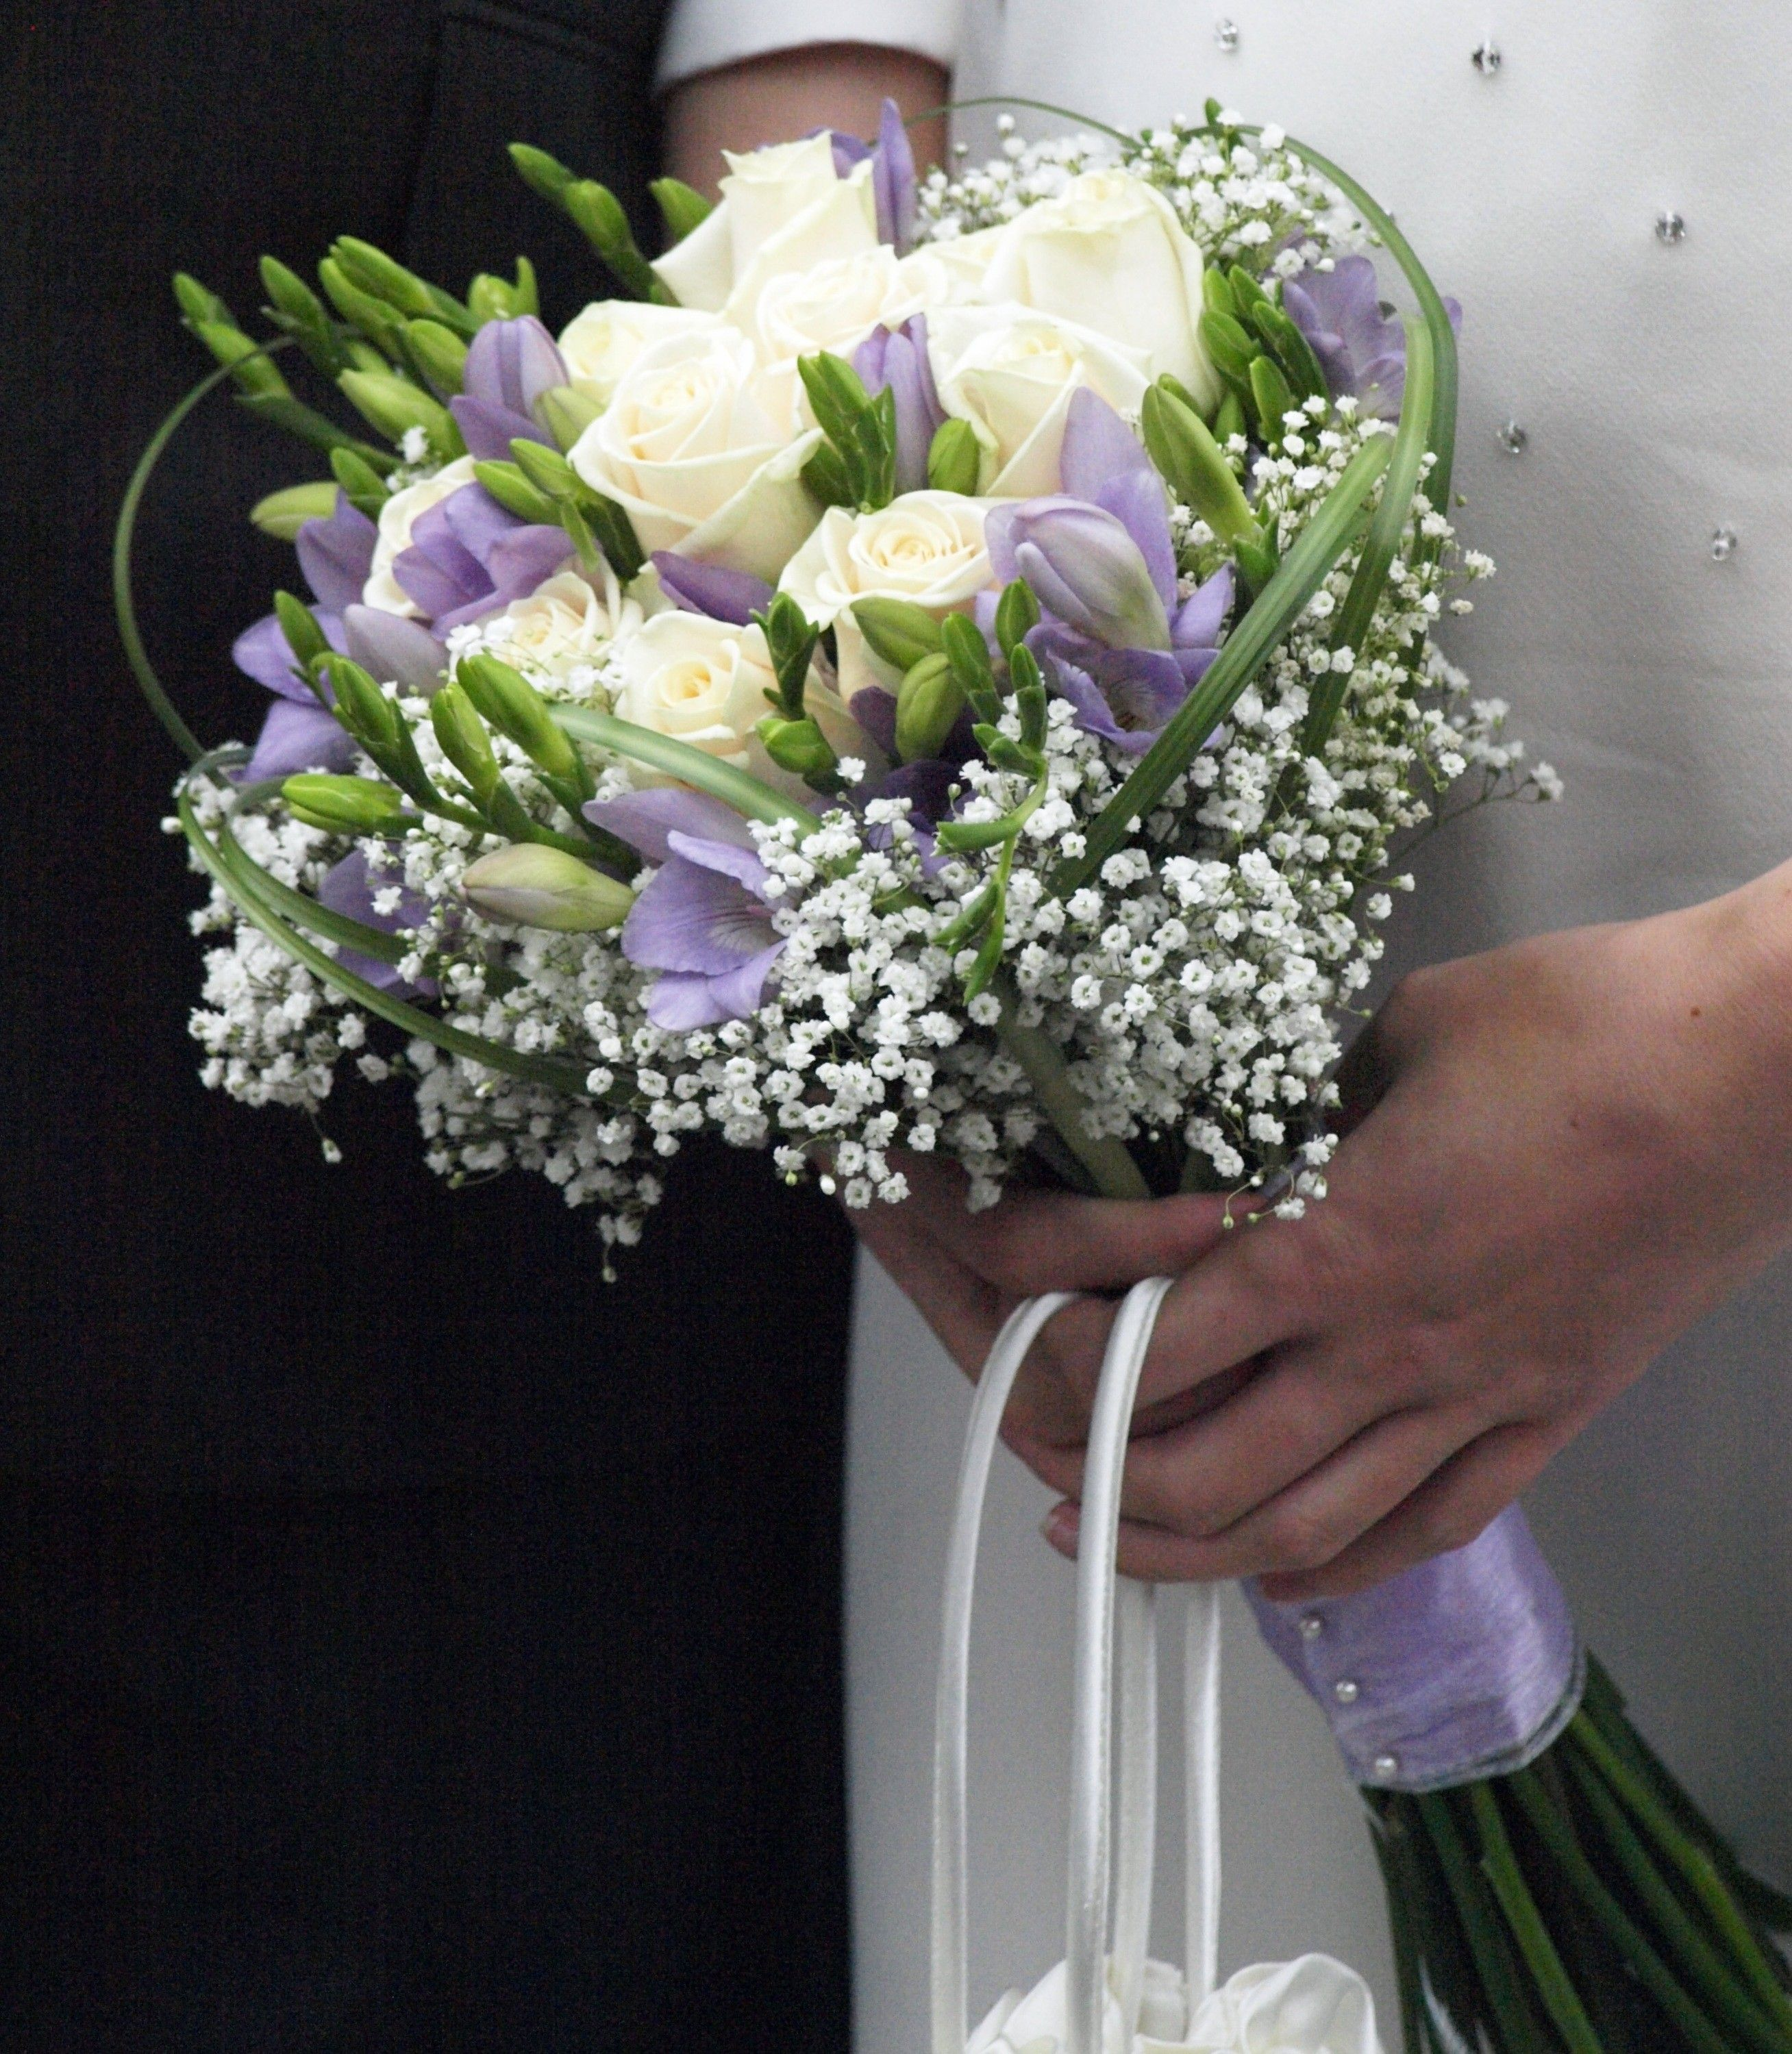 Freesias and cream roses google search wedding bouquet freesias and cream roses google search izmirmasajfo Gallery